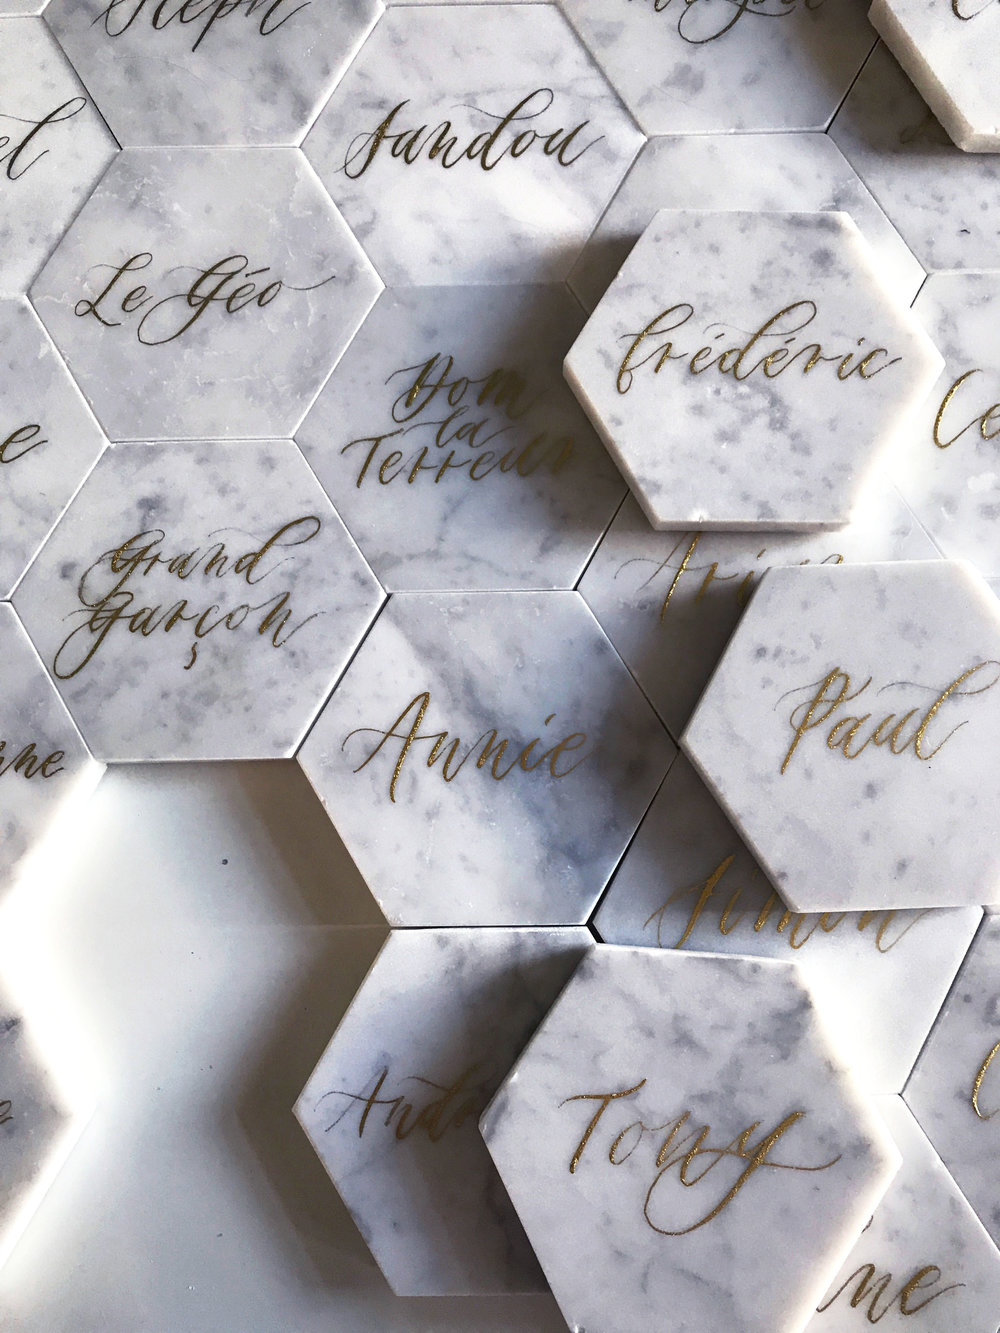 Montreal Place Cards, Escort Cards on Marble - Marques Place sur Marbre